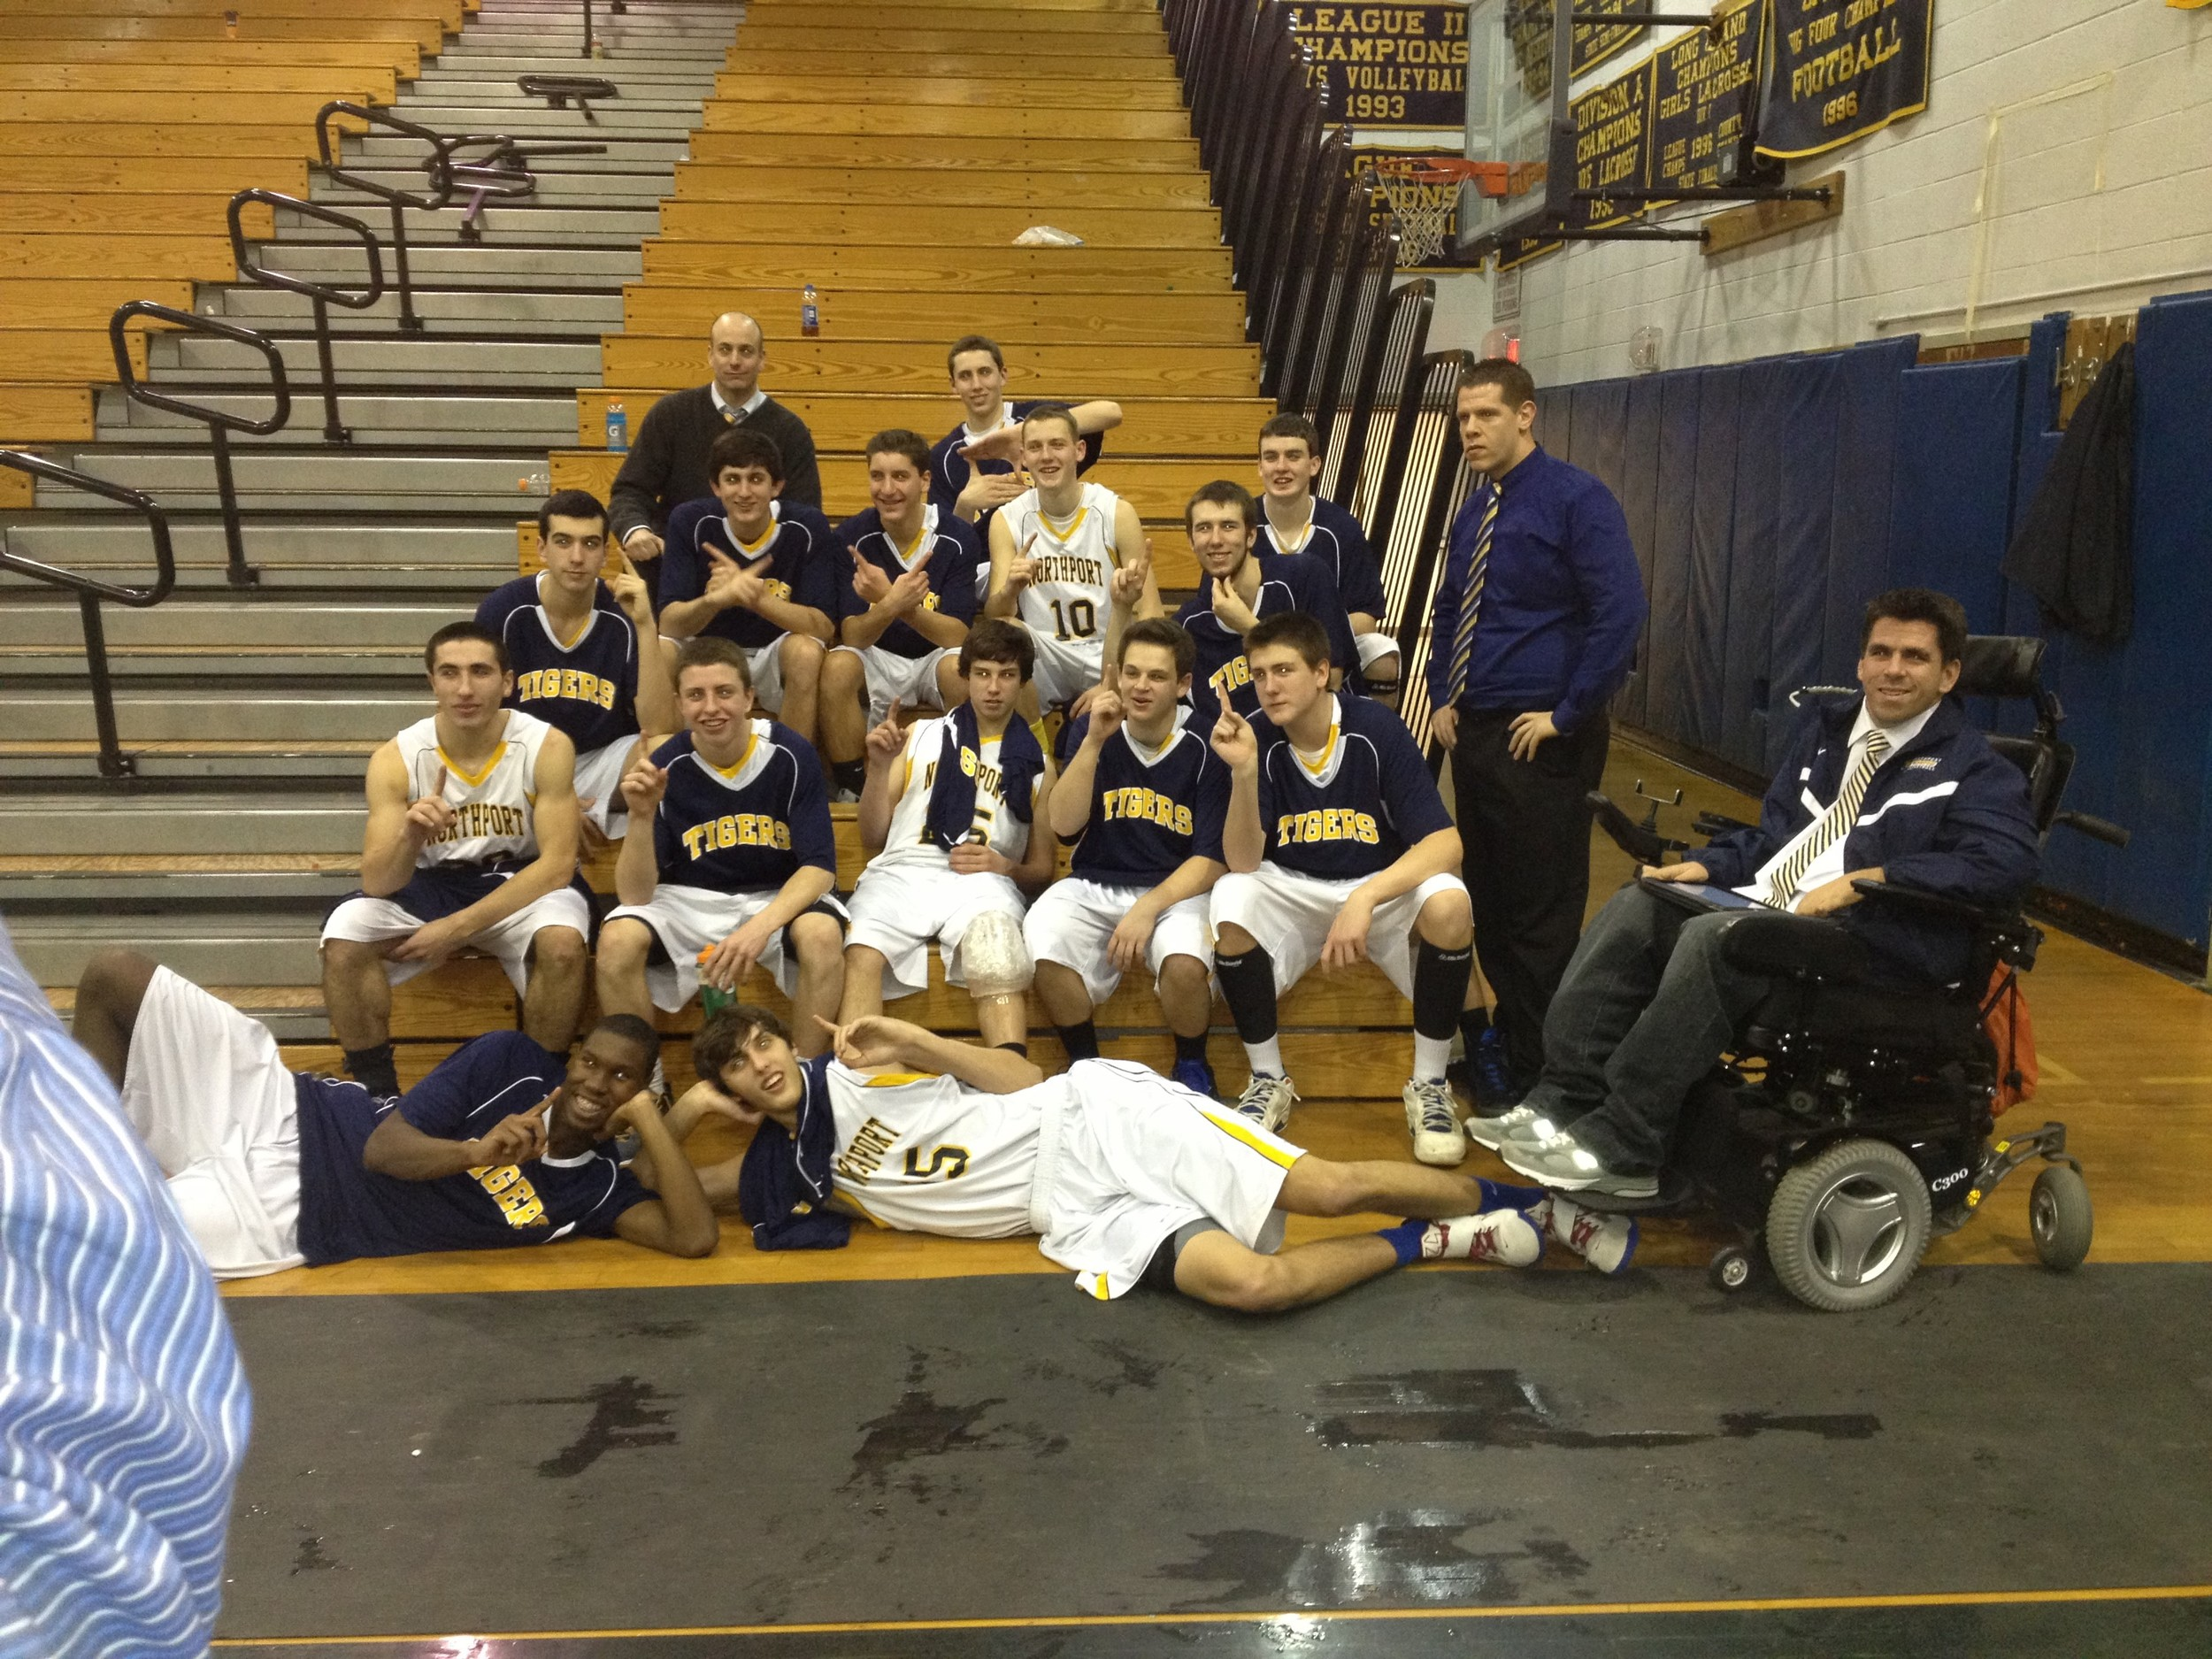 Assistant coach for the Northport varsity boys basketball team, Tim Dunne, right, poses for a picture with the 2012-2013 team, which went on to win a Long Islander championship.